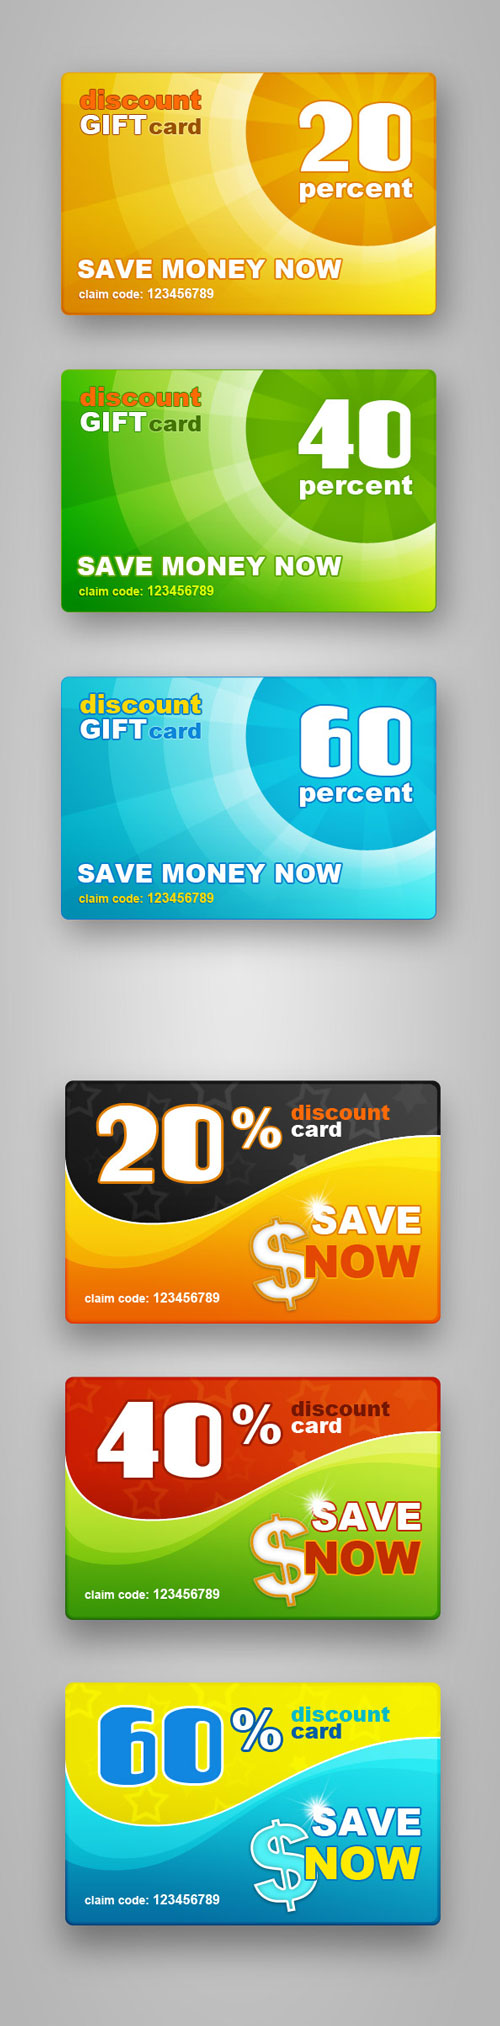 discount-gift-cards-template-free-psd-detail